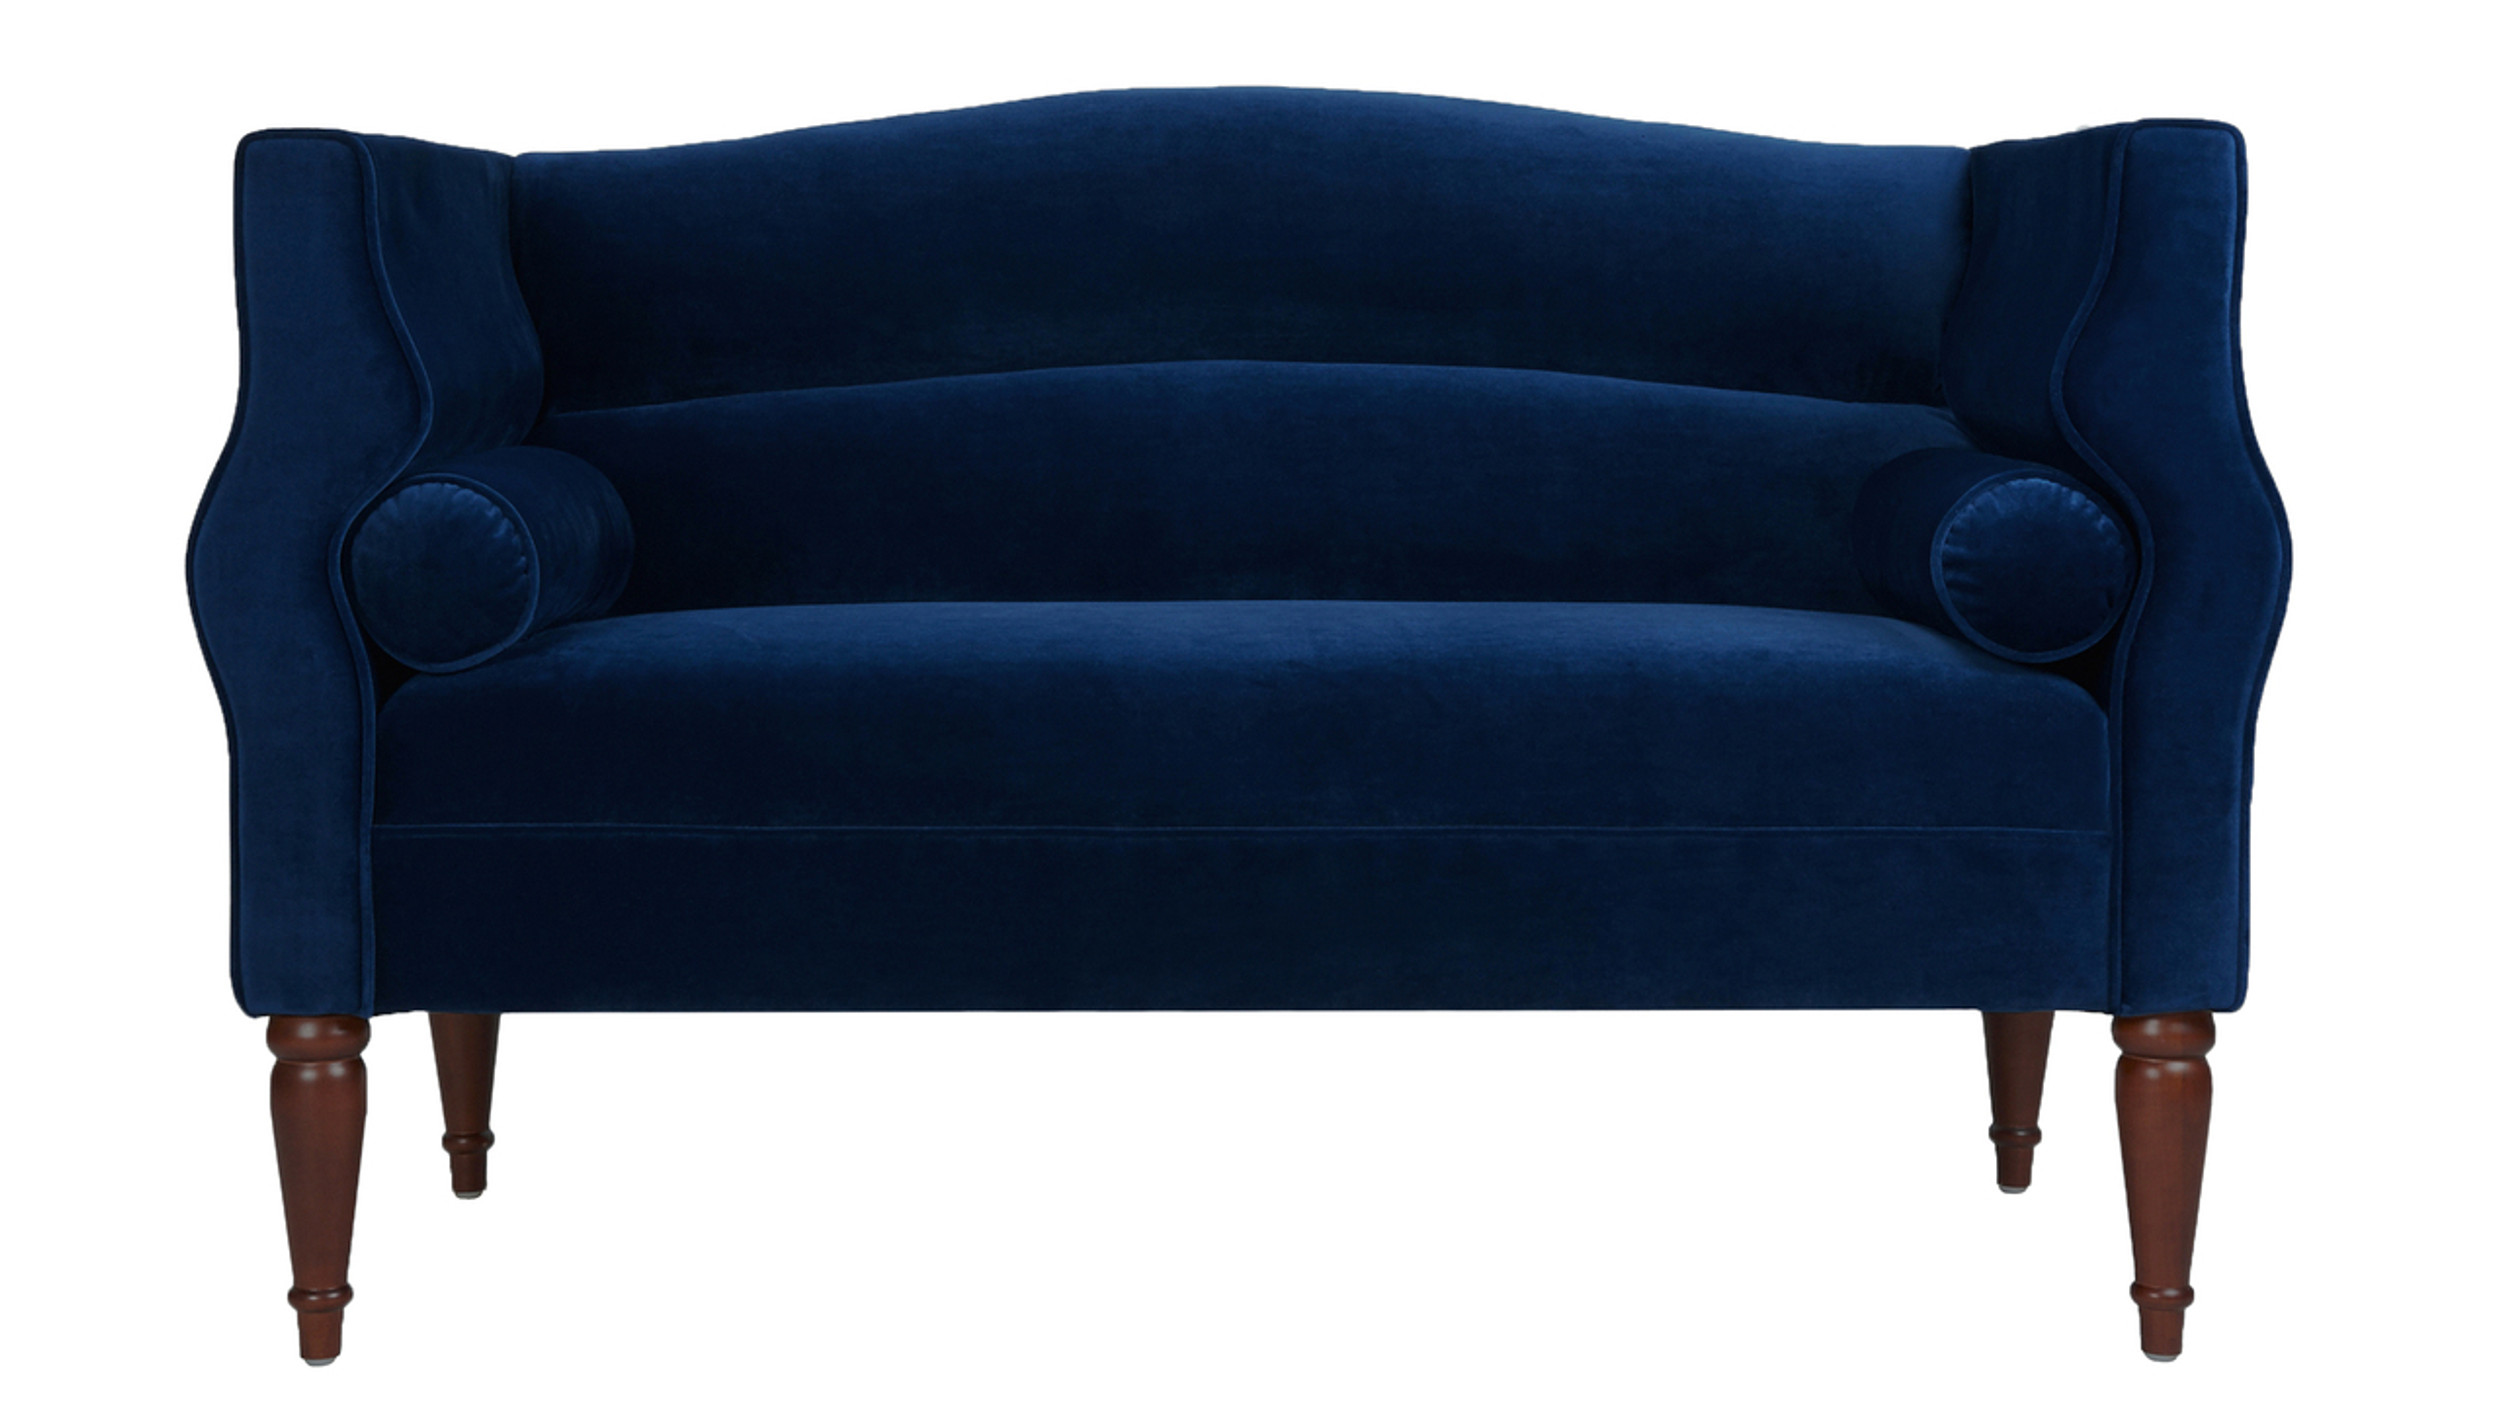 Fantastic Joanna Camel Back Uptown Loveseat Navy Blue Onthecornerstone Fun Painted Chair Ideas Images Onthecornerstoneorg